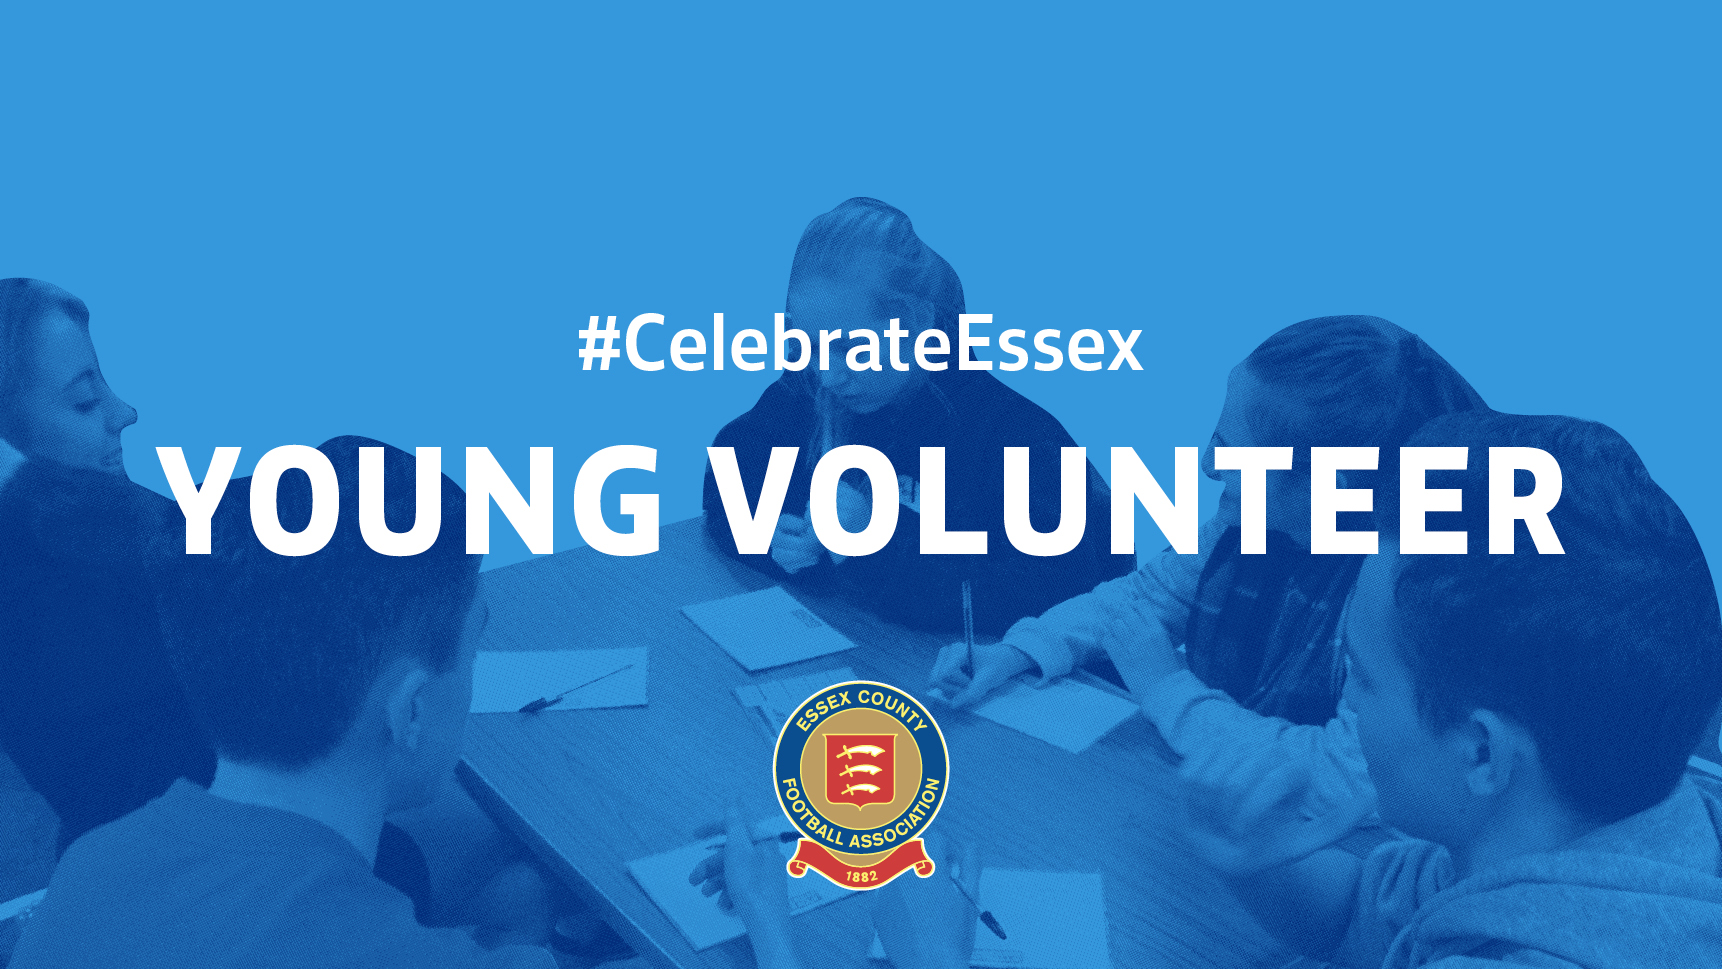 #CelebrateEssex Young Volunteer